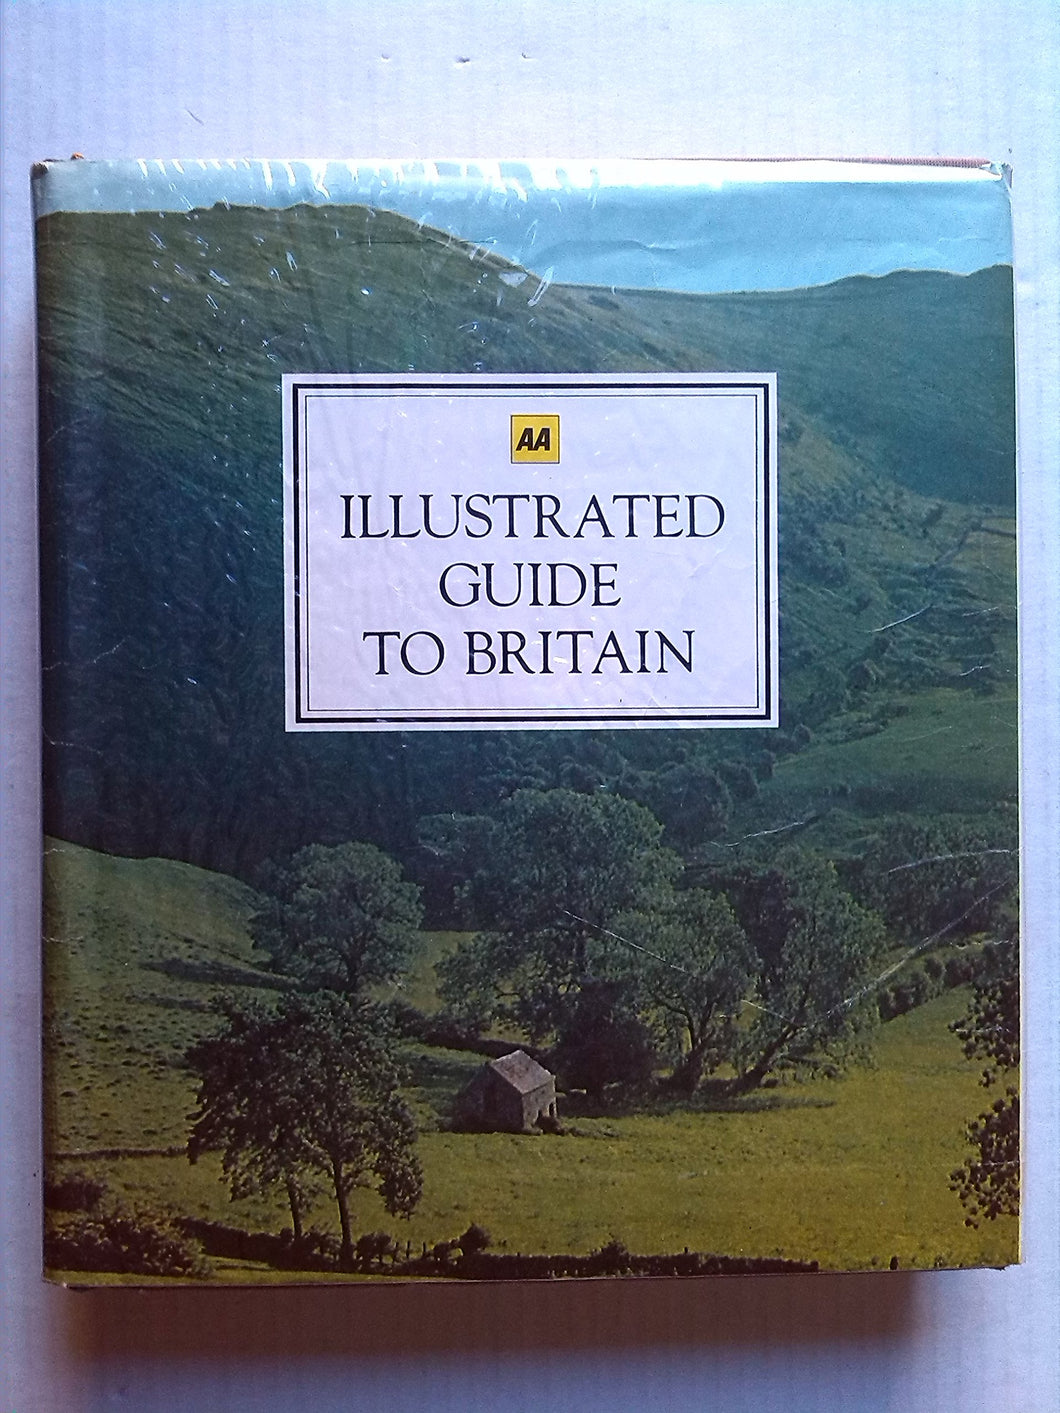 Illustrated Guide To Britain Various and Drive Publications